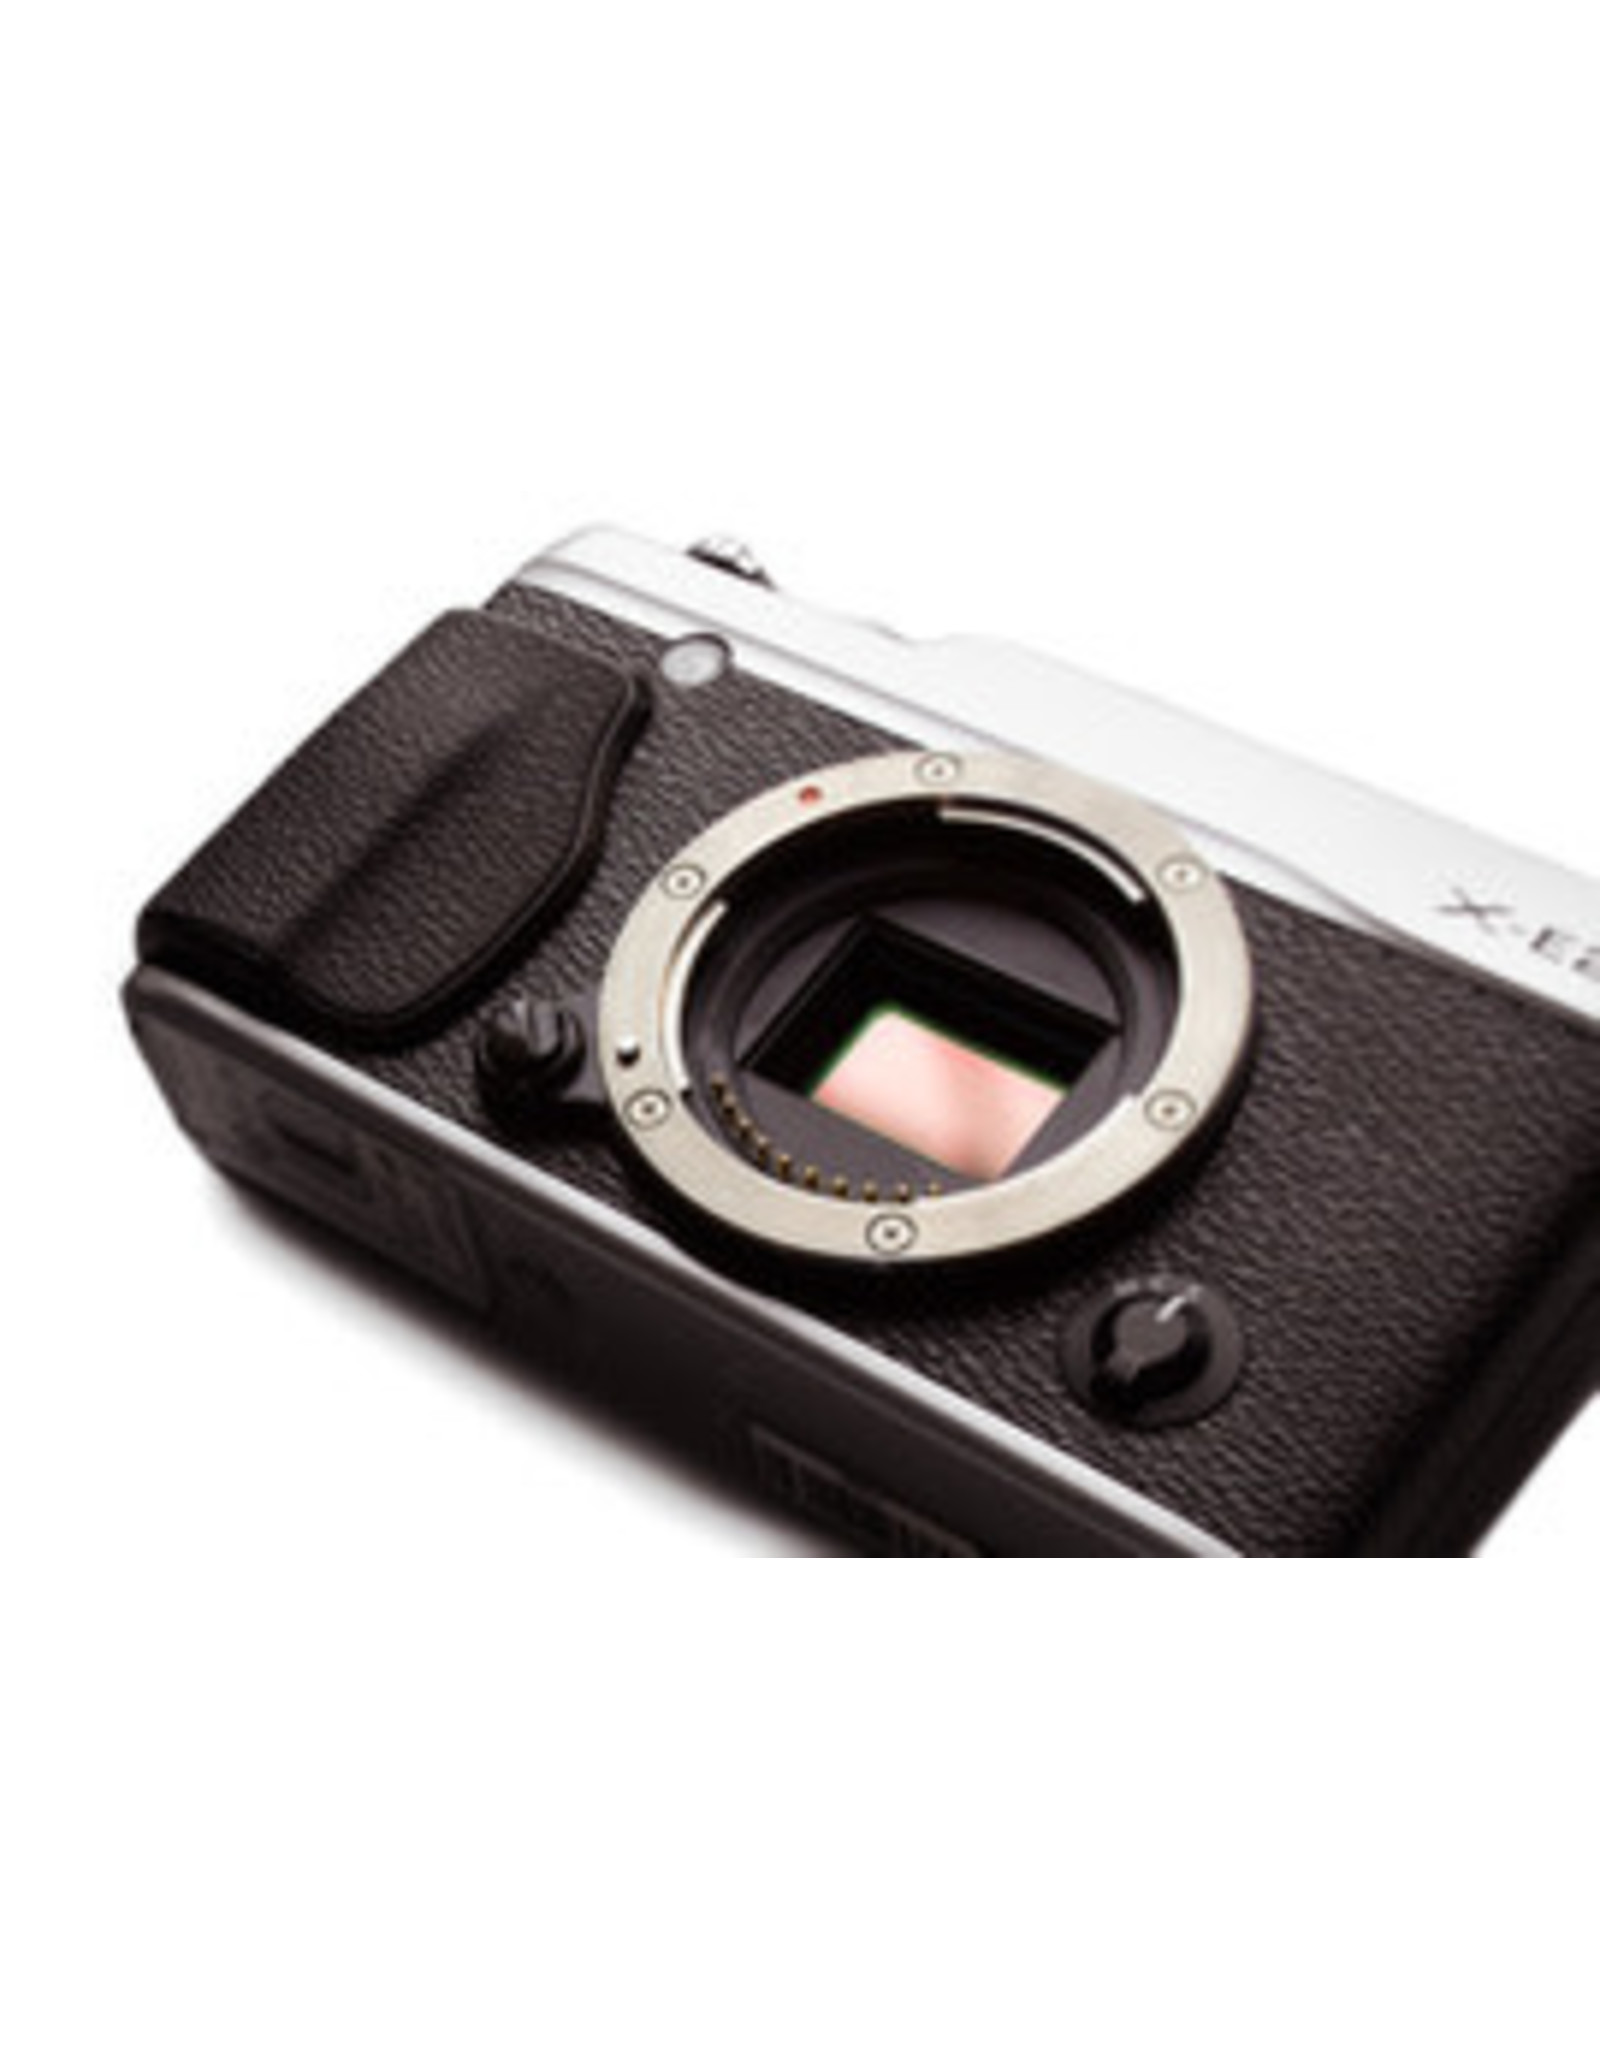 Acme Service Digital SLR and Mirrorless Camera Sensor Cleaning